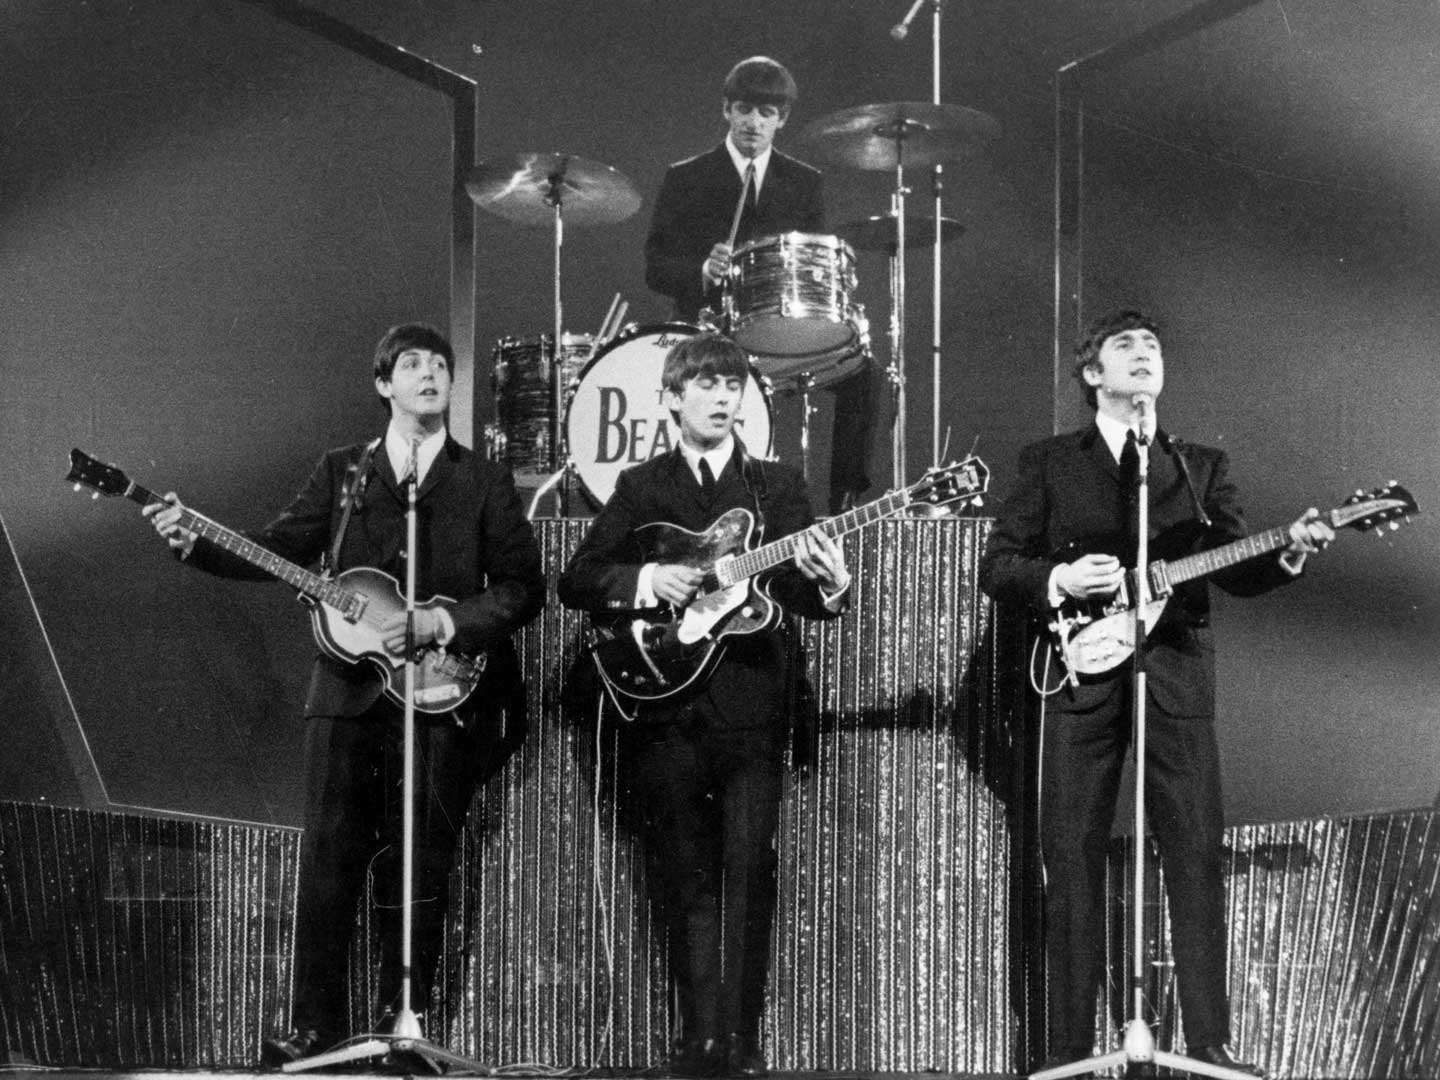 The Beatles performing at the London Palladium